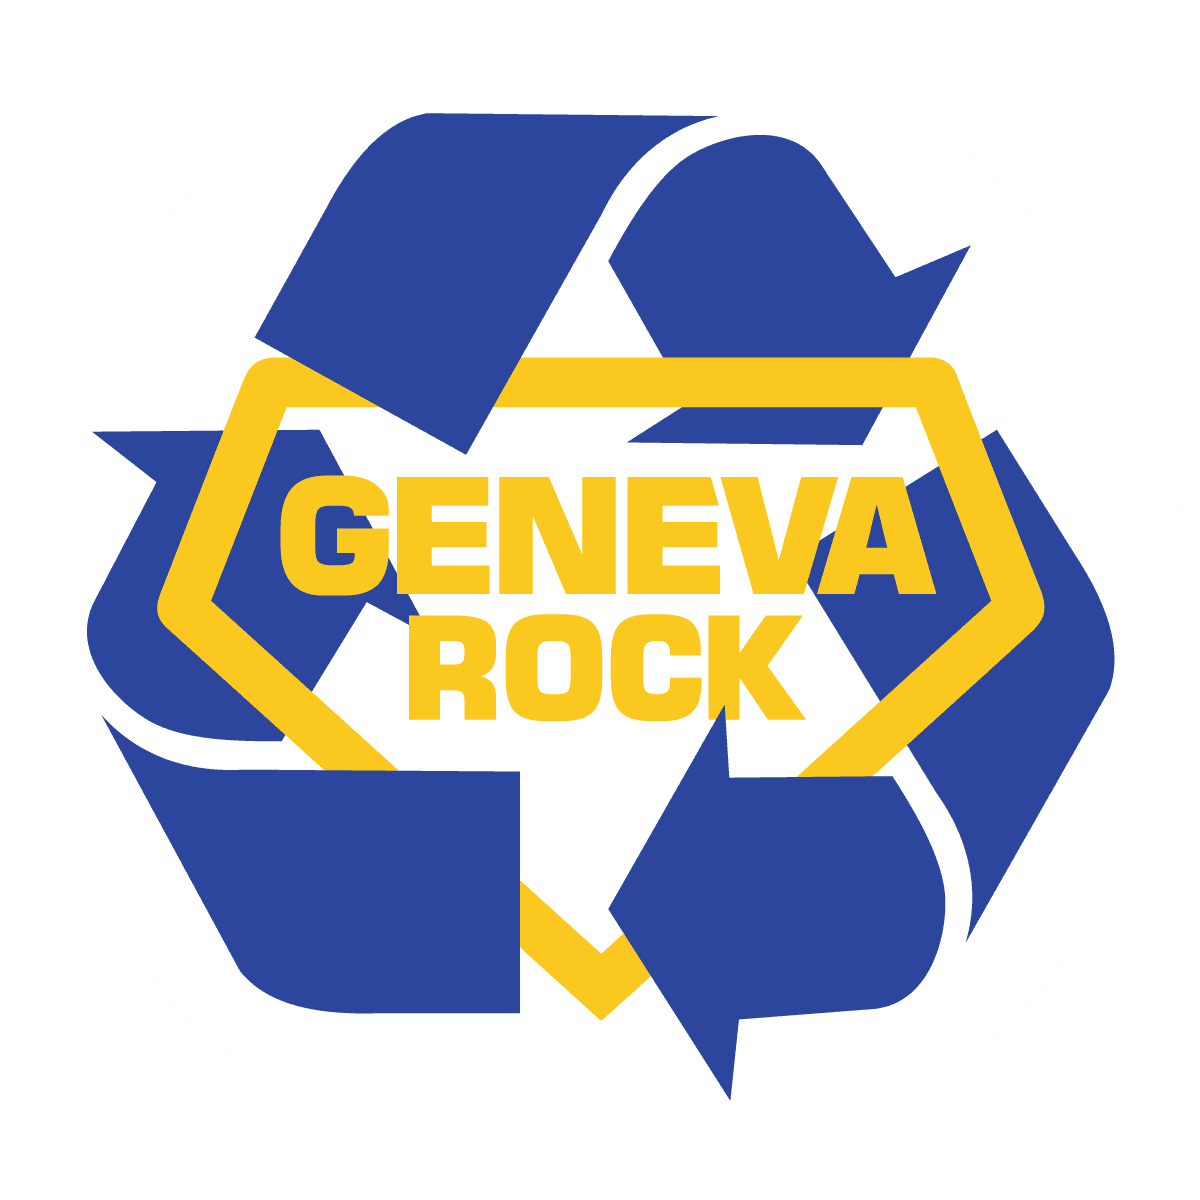 Geneva Rock Reduces, Reuses and Recycles